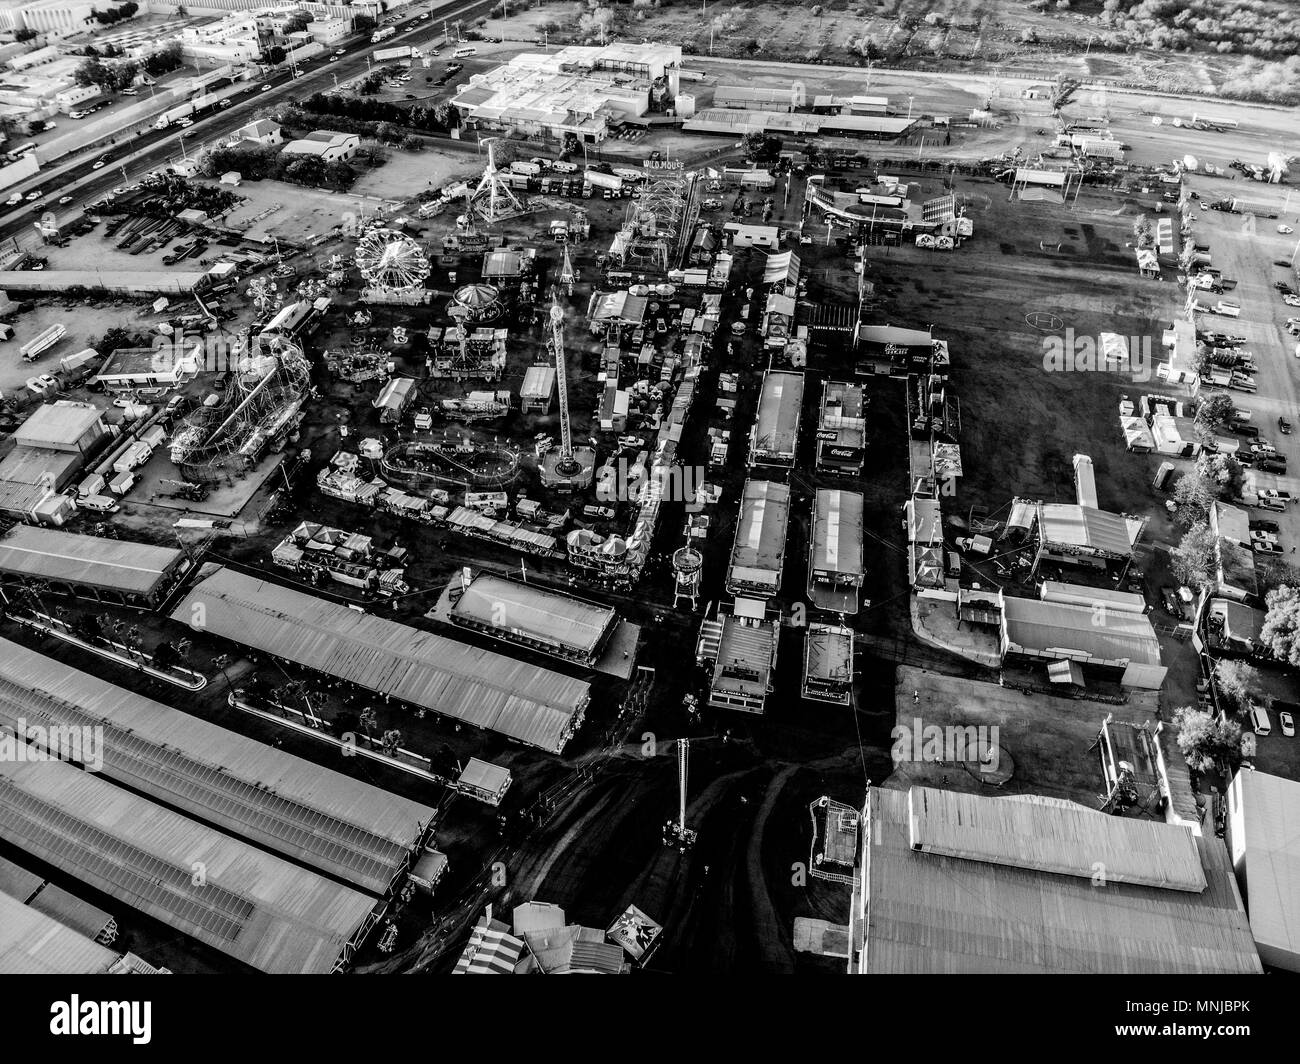 Aerial view of the Rodeo arena, rides and facilities and corrals of the expo or Ganadera de Sonora Mexico fair (UGRS). Hermosillo Sonora. - Stock Image